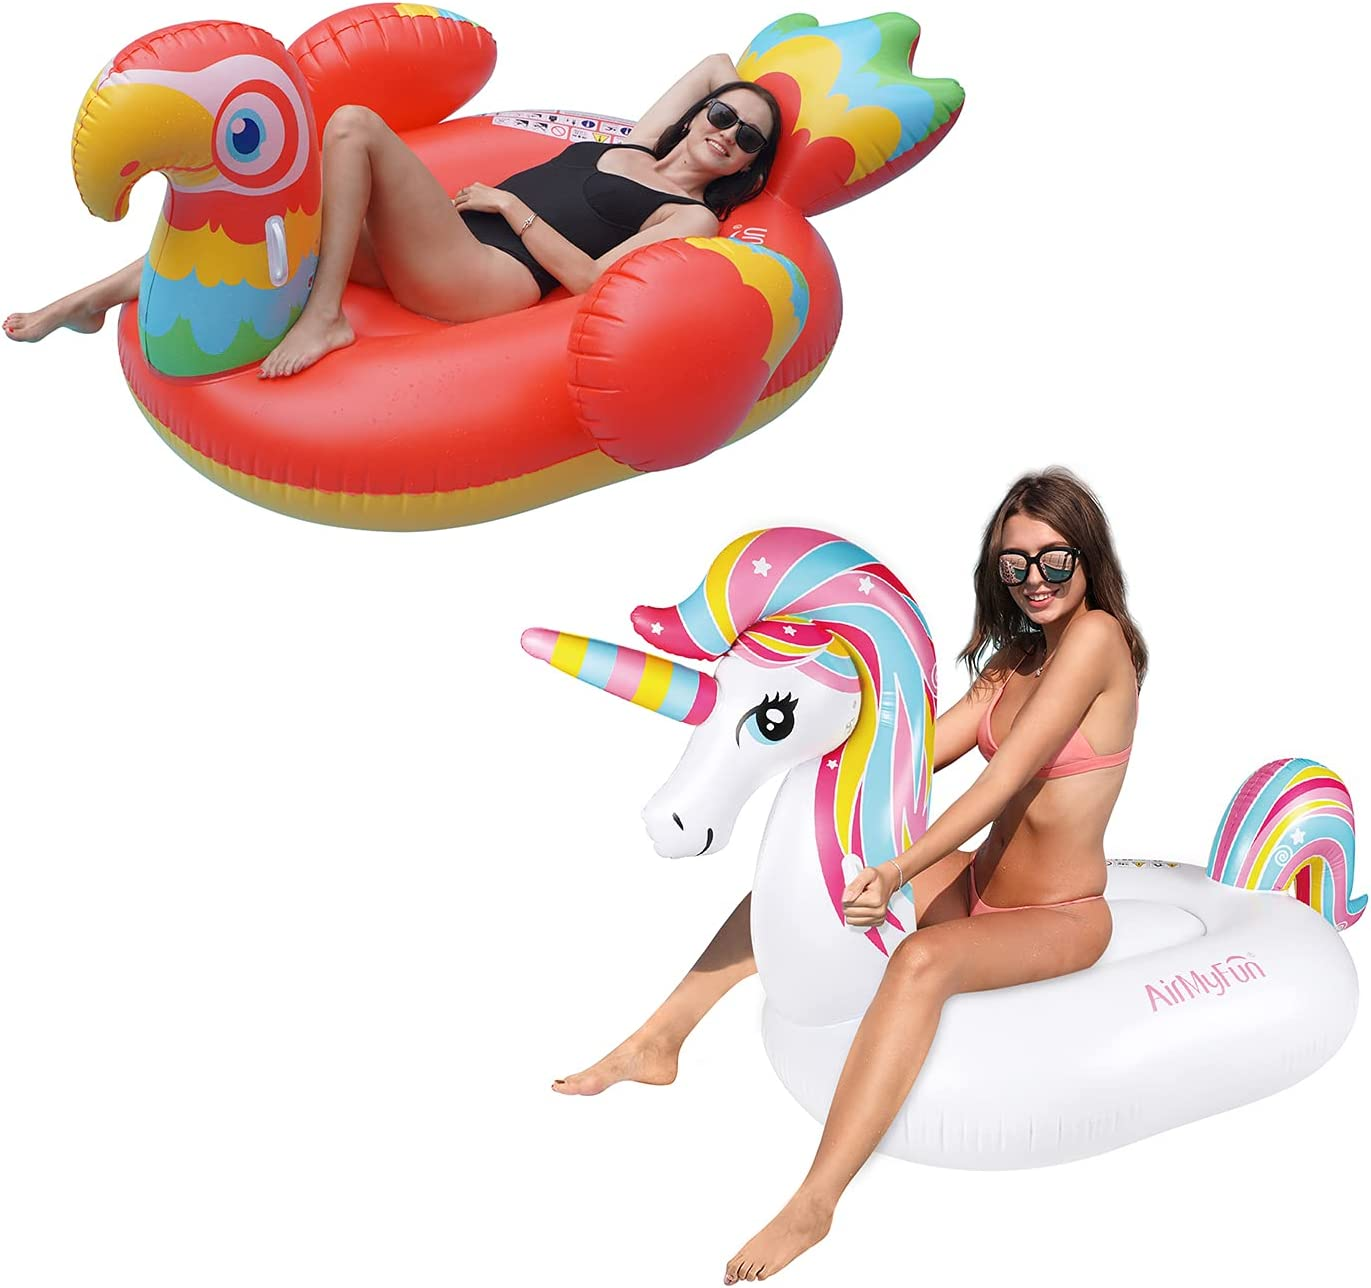 AirMyFun Inflatable Pool Float for Omaha Mall Po Kids Ranking TOP16 Giant Ride-On Adults